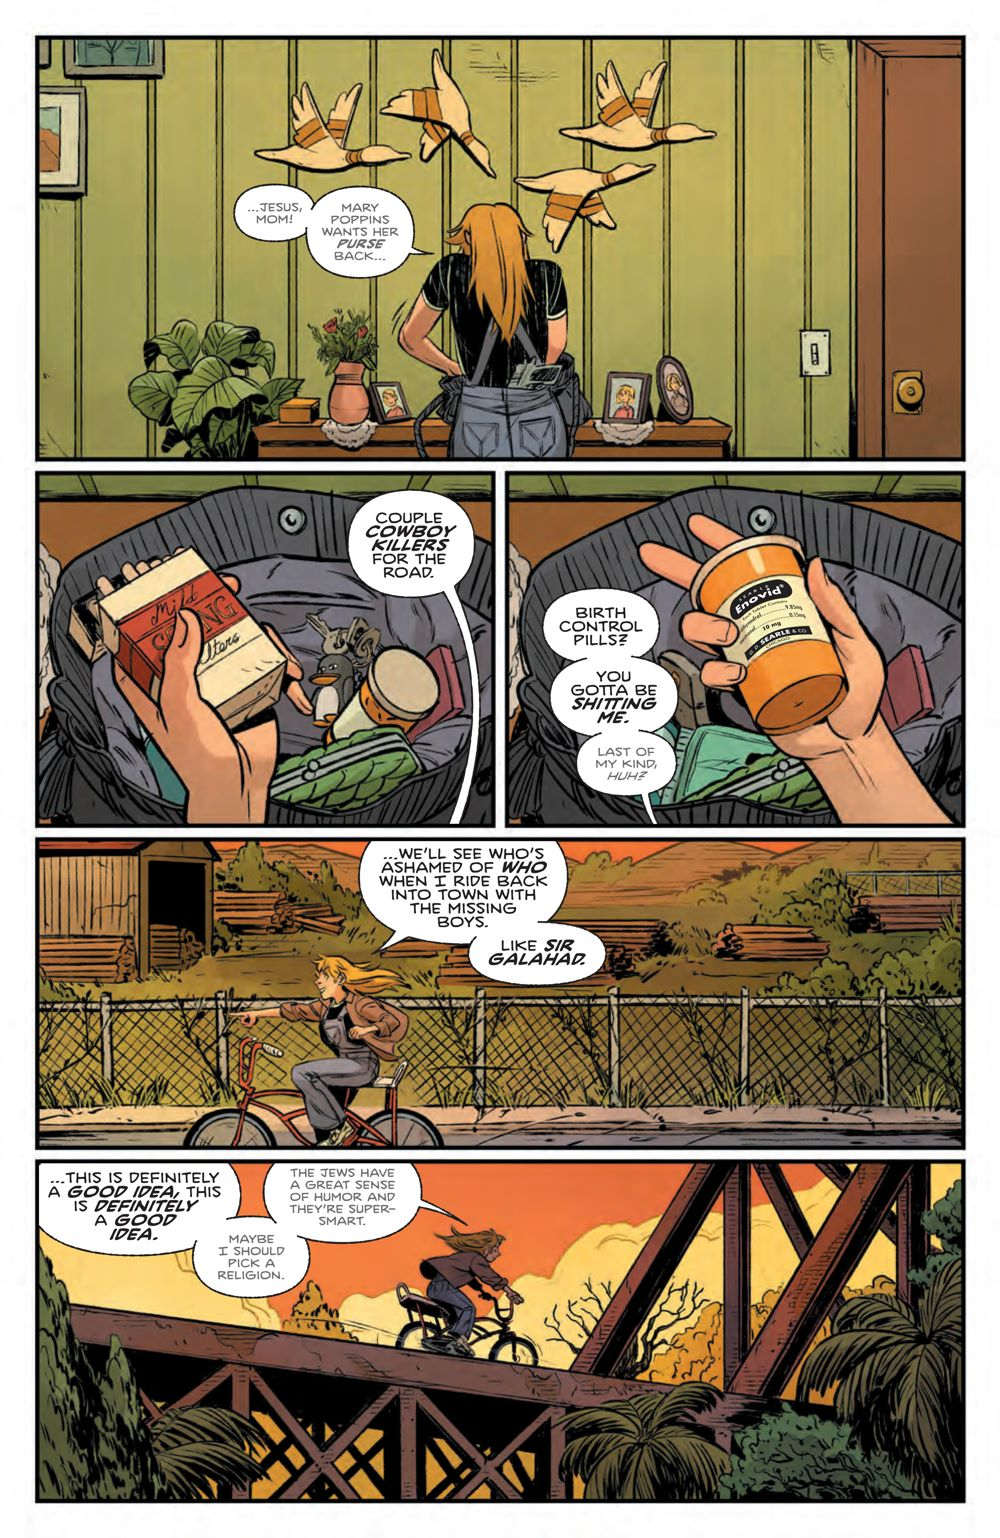 ProctorValleyRoad_002_PRESS_8 ComicList Previews: PROCTOR VALLEY ROAD #2 (OF 5)